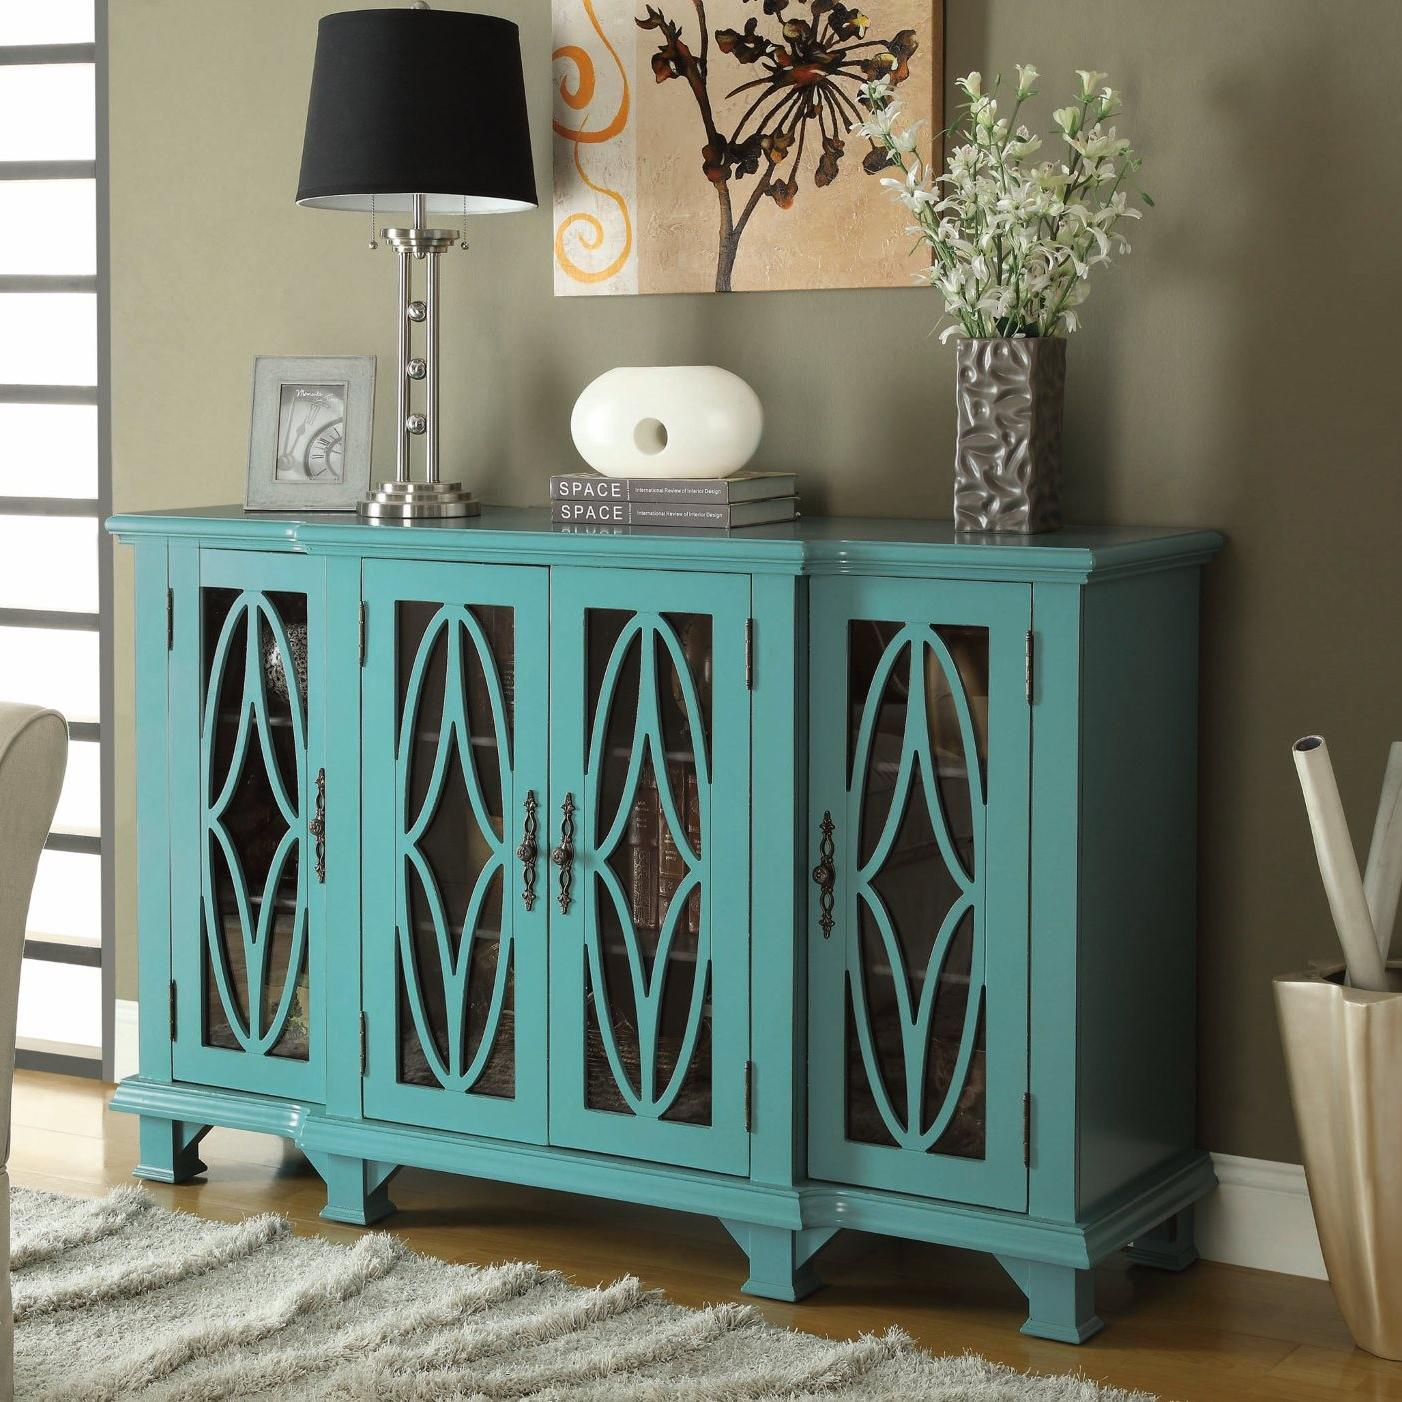 coaster accent cabinets large teal cabinet with glass doors products color kitchen table tiffany lights pier one mirrored desk marble top foyer gold knobs wall mounted drop leaf